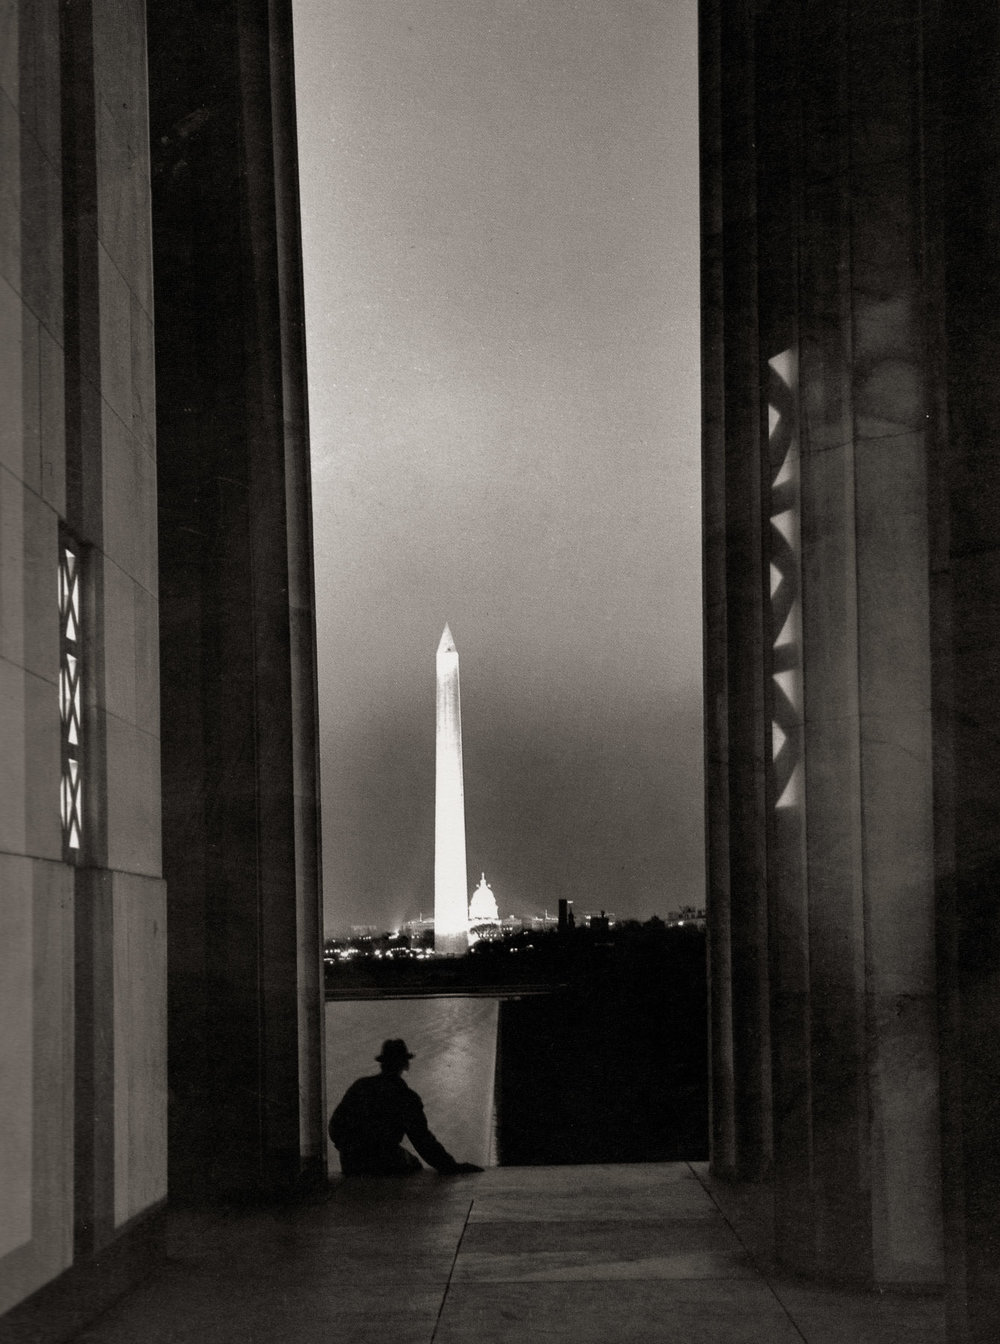 """The Mall."" The classic view of Washington: the Capitol peeking out from behind the Washington Monument as viewed from between the columns of the Lincoln Memorial. The shadowy figure in the foreground is Wentzel's friend Eric Menke, the man who gave him his copy of Barassai's book."